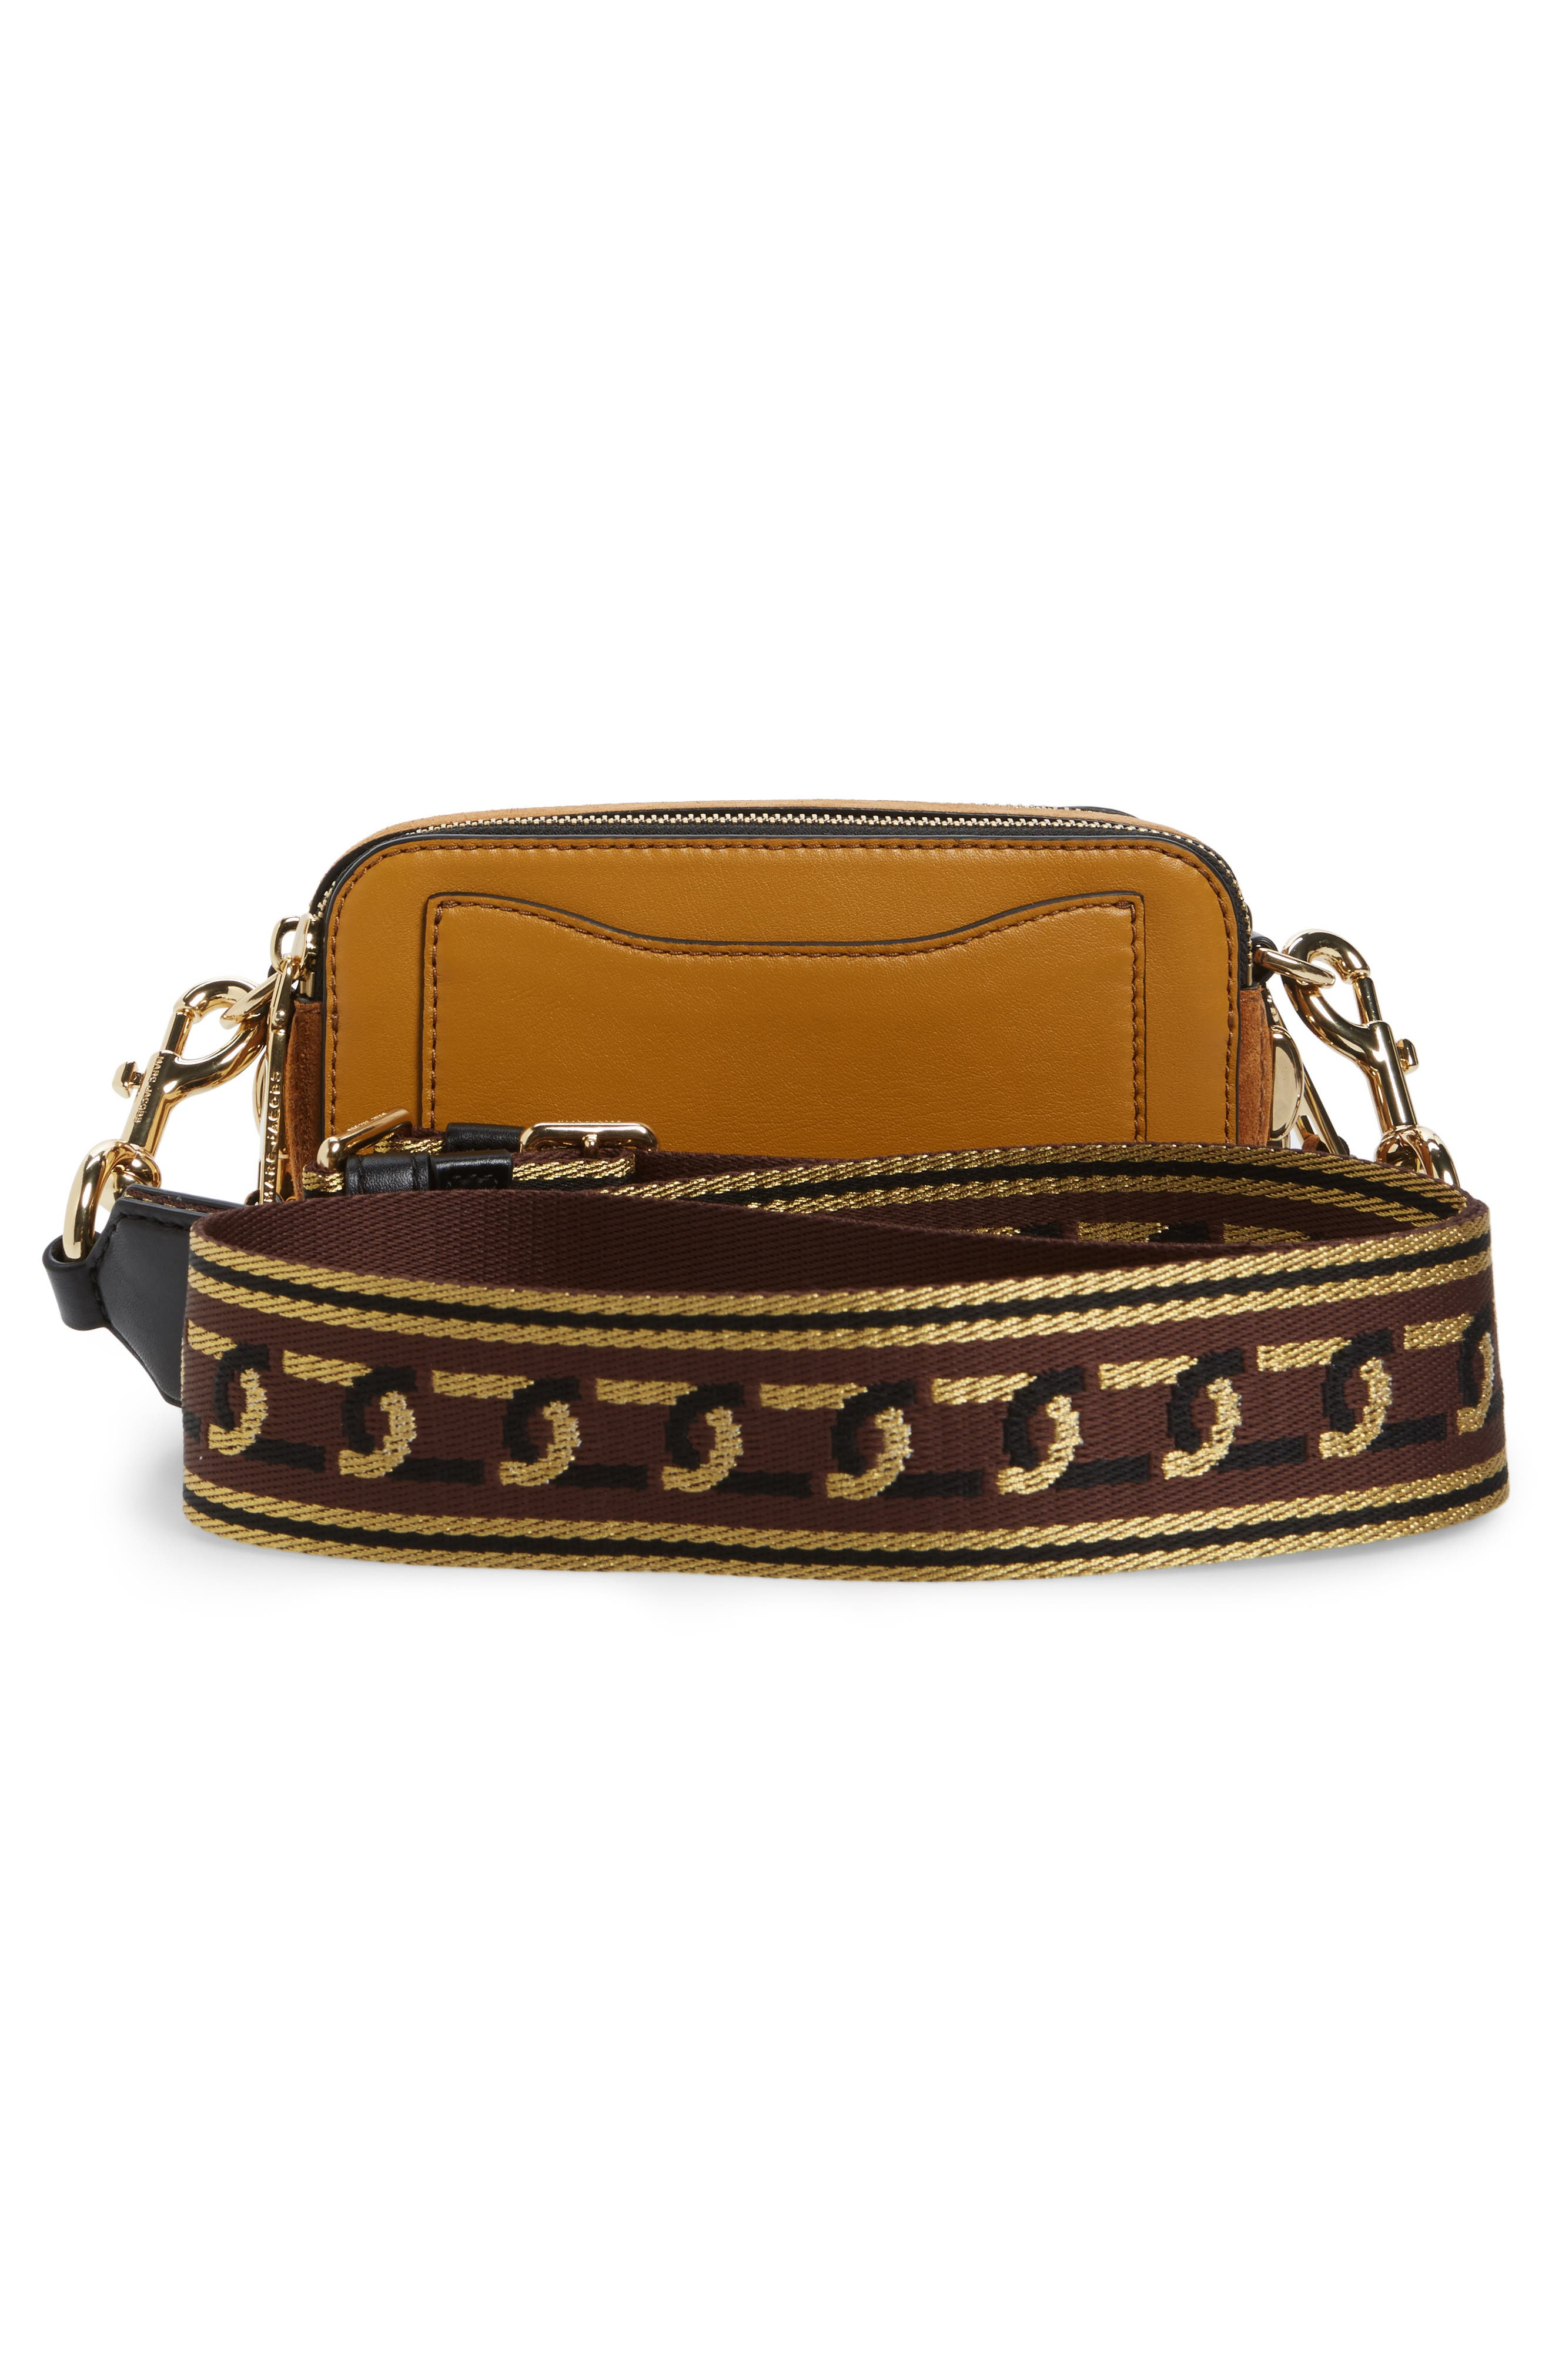 Small Chain Snapshot Suede Camera Bag,                             Alternate thumbnail 3, color,                             MUSTARD